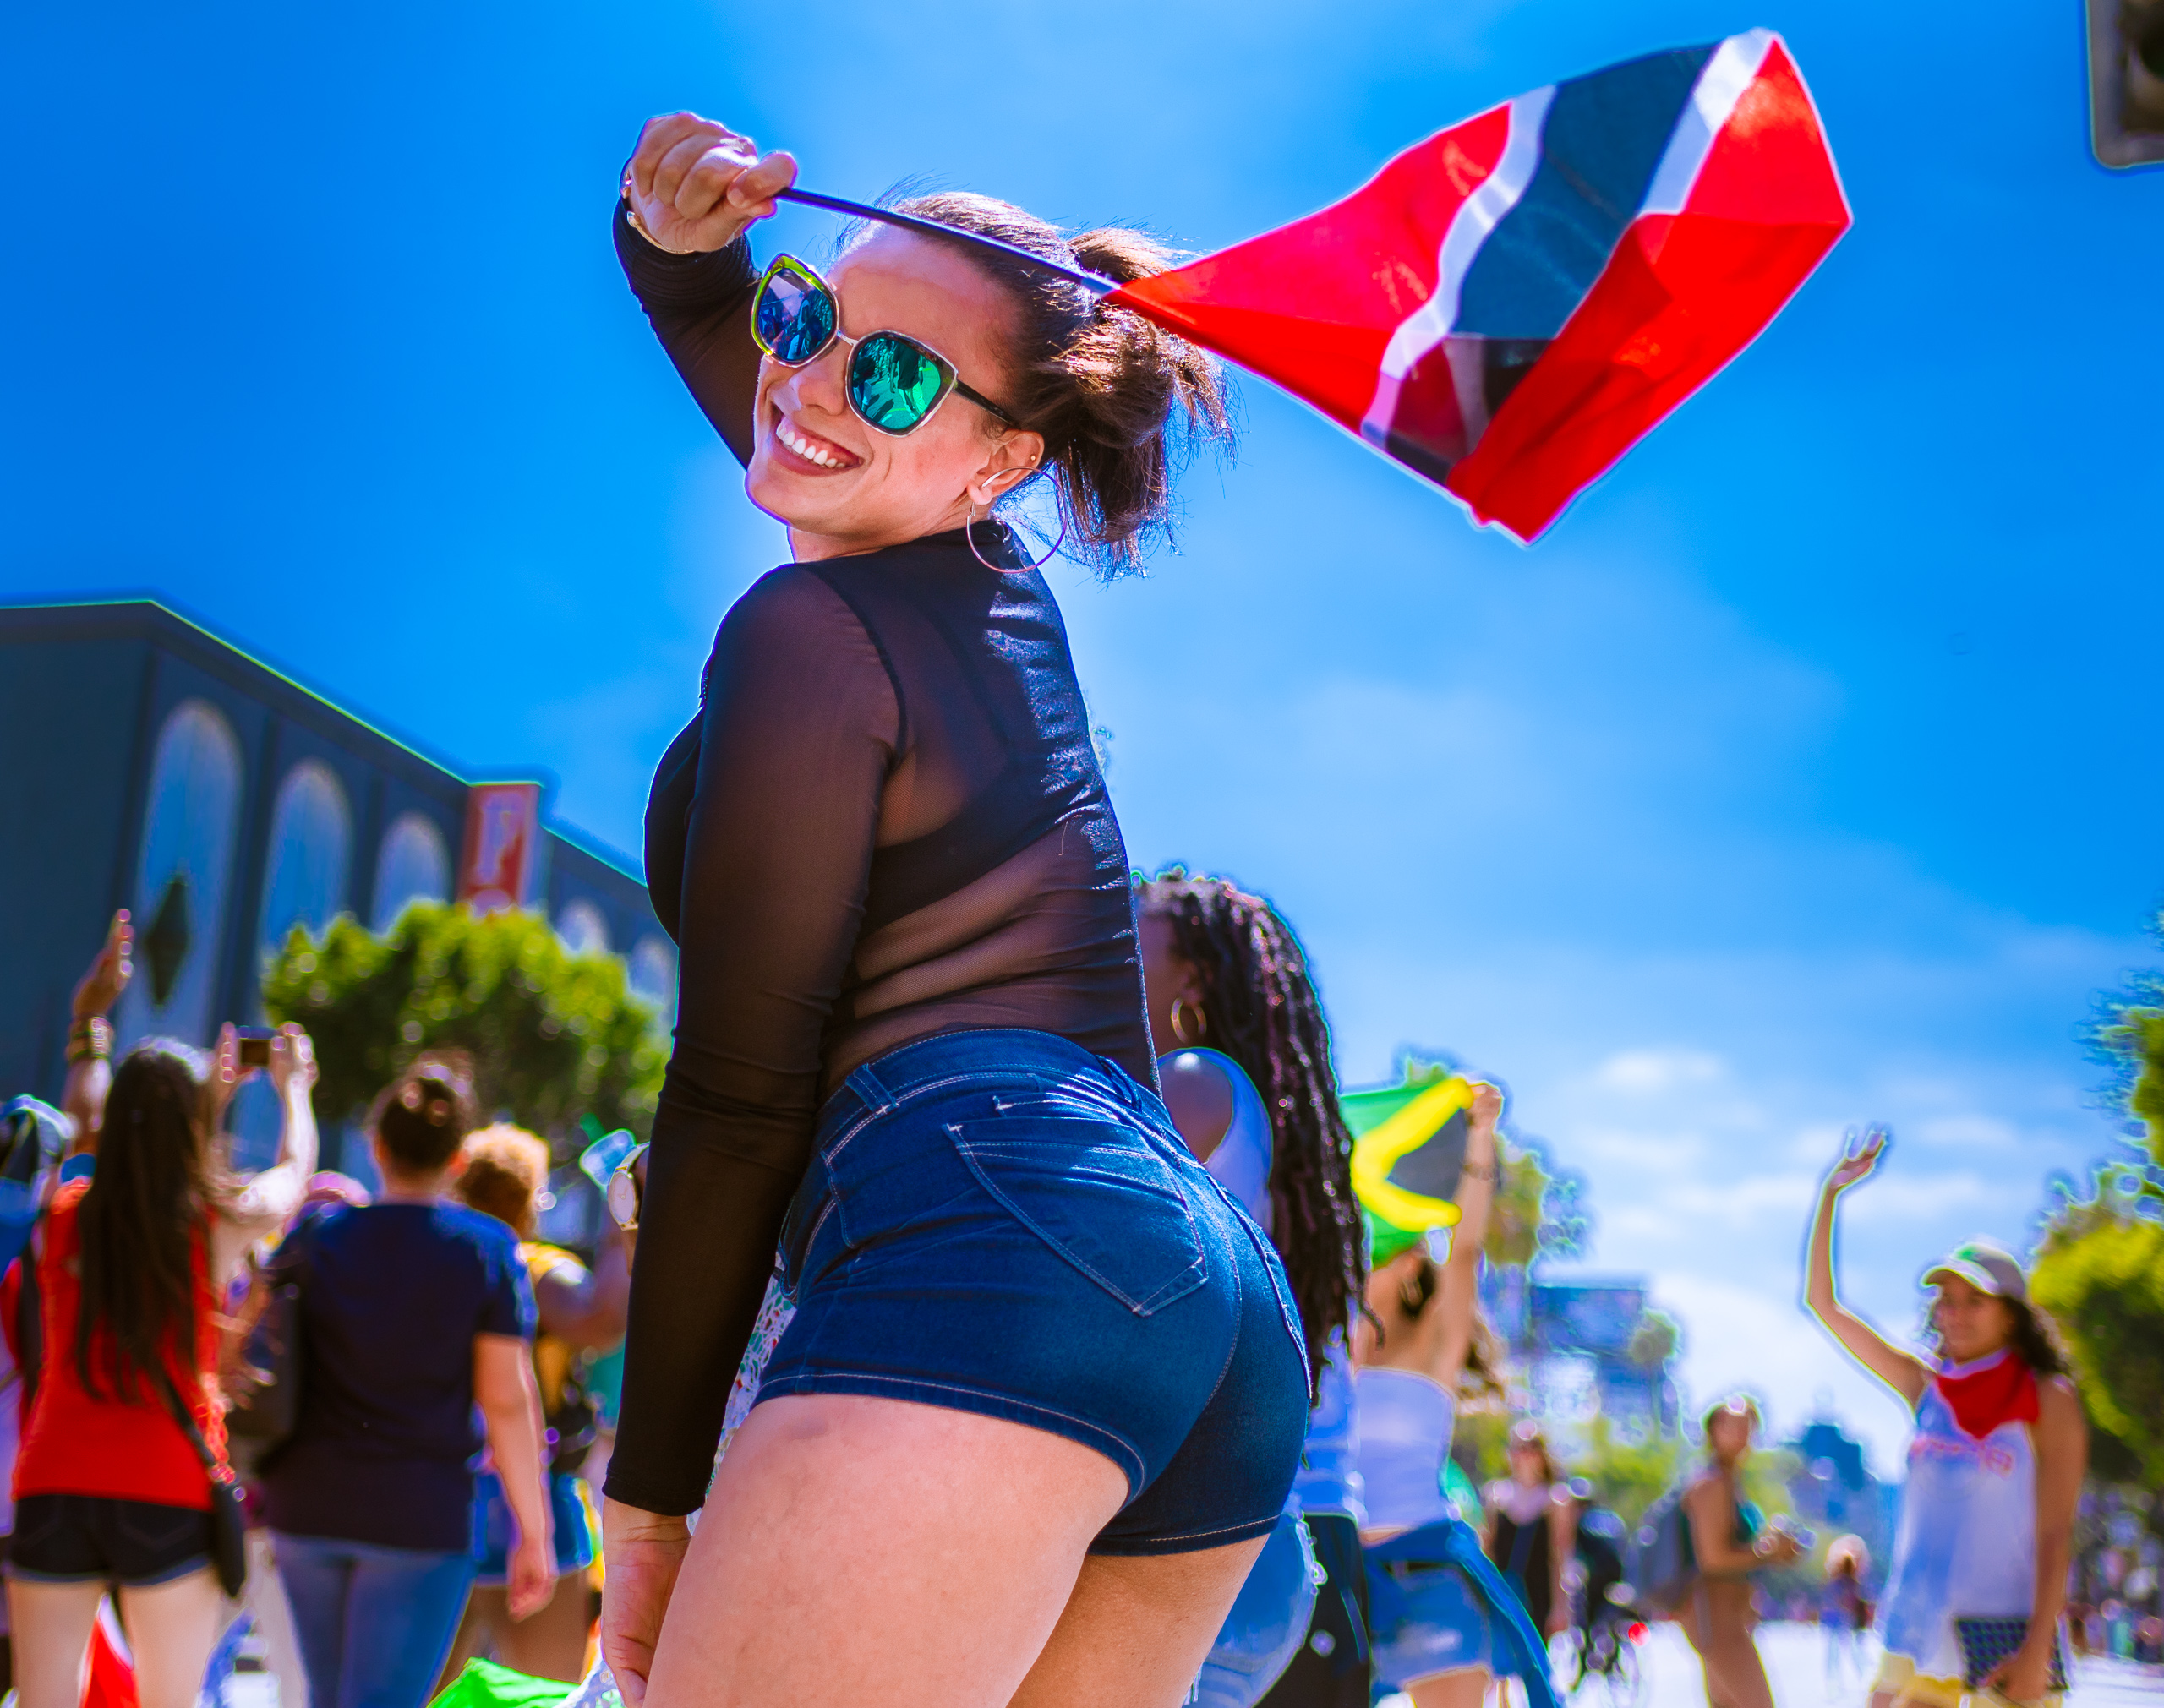 a woman in a black shirt and denim shorts joyously waves a Trinidad & Tobago red-white-black flag against a blue sky